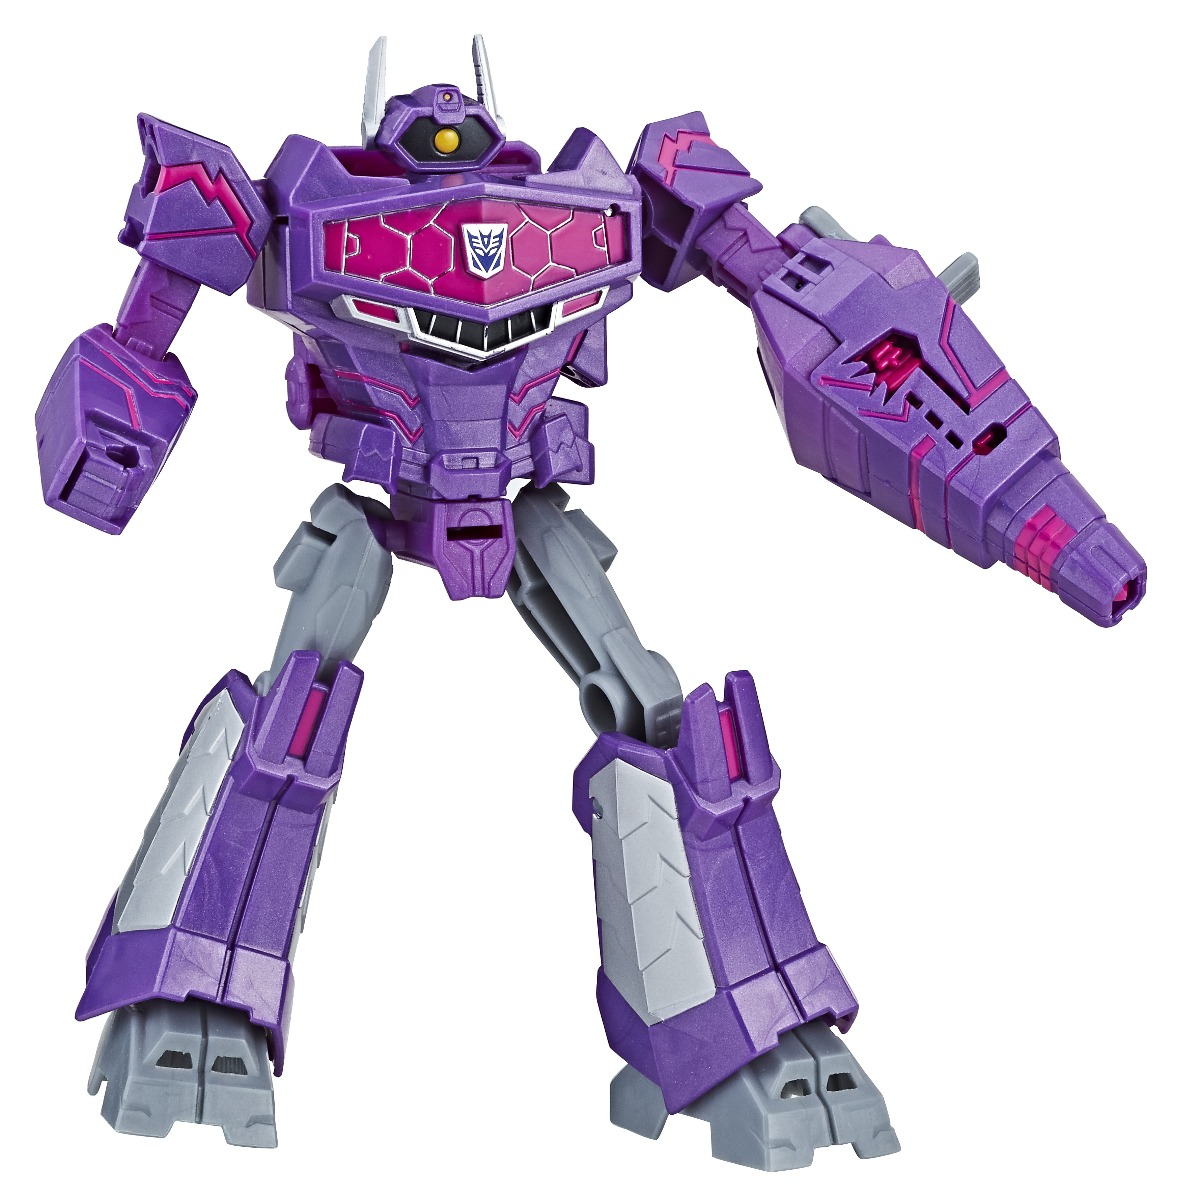 Figurina Transformers Cyberverse Action Attacker Ultra Shockwave